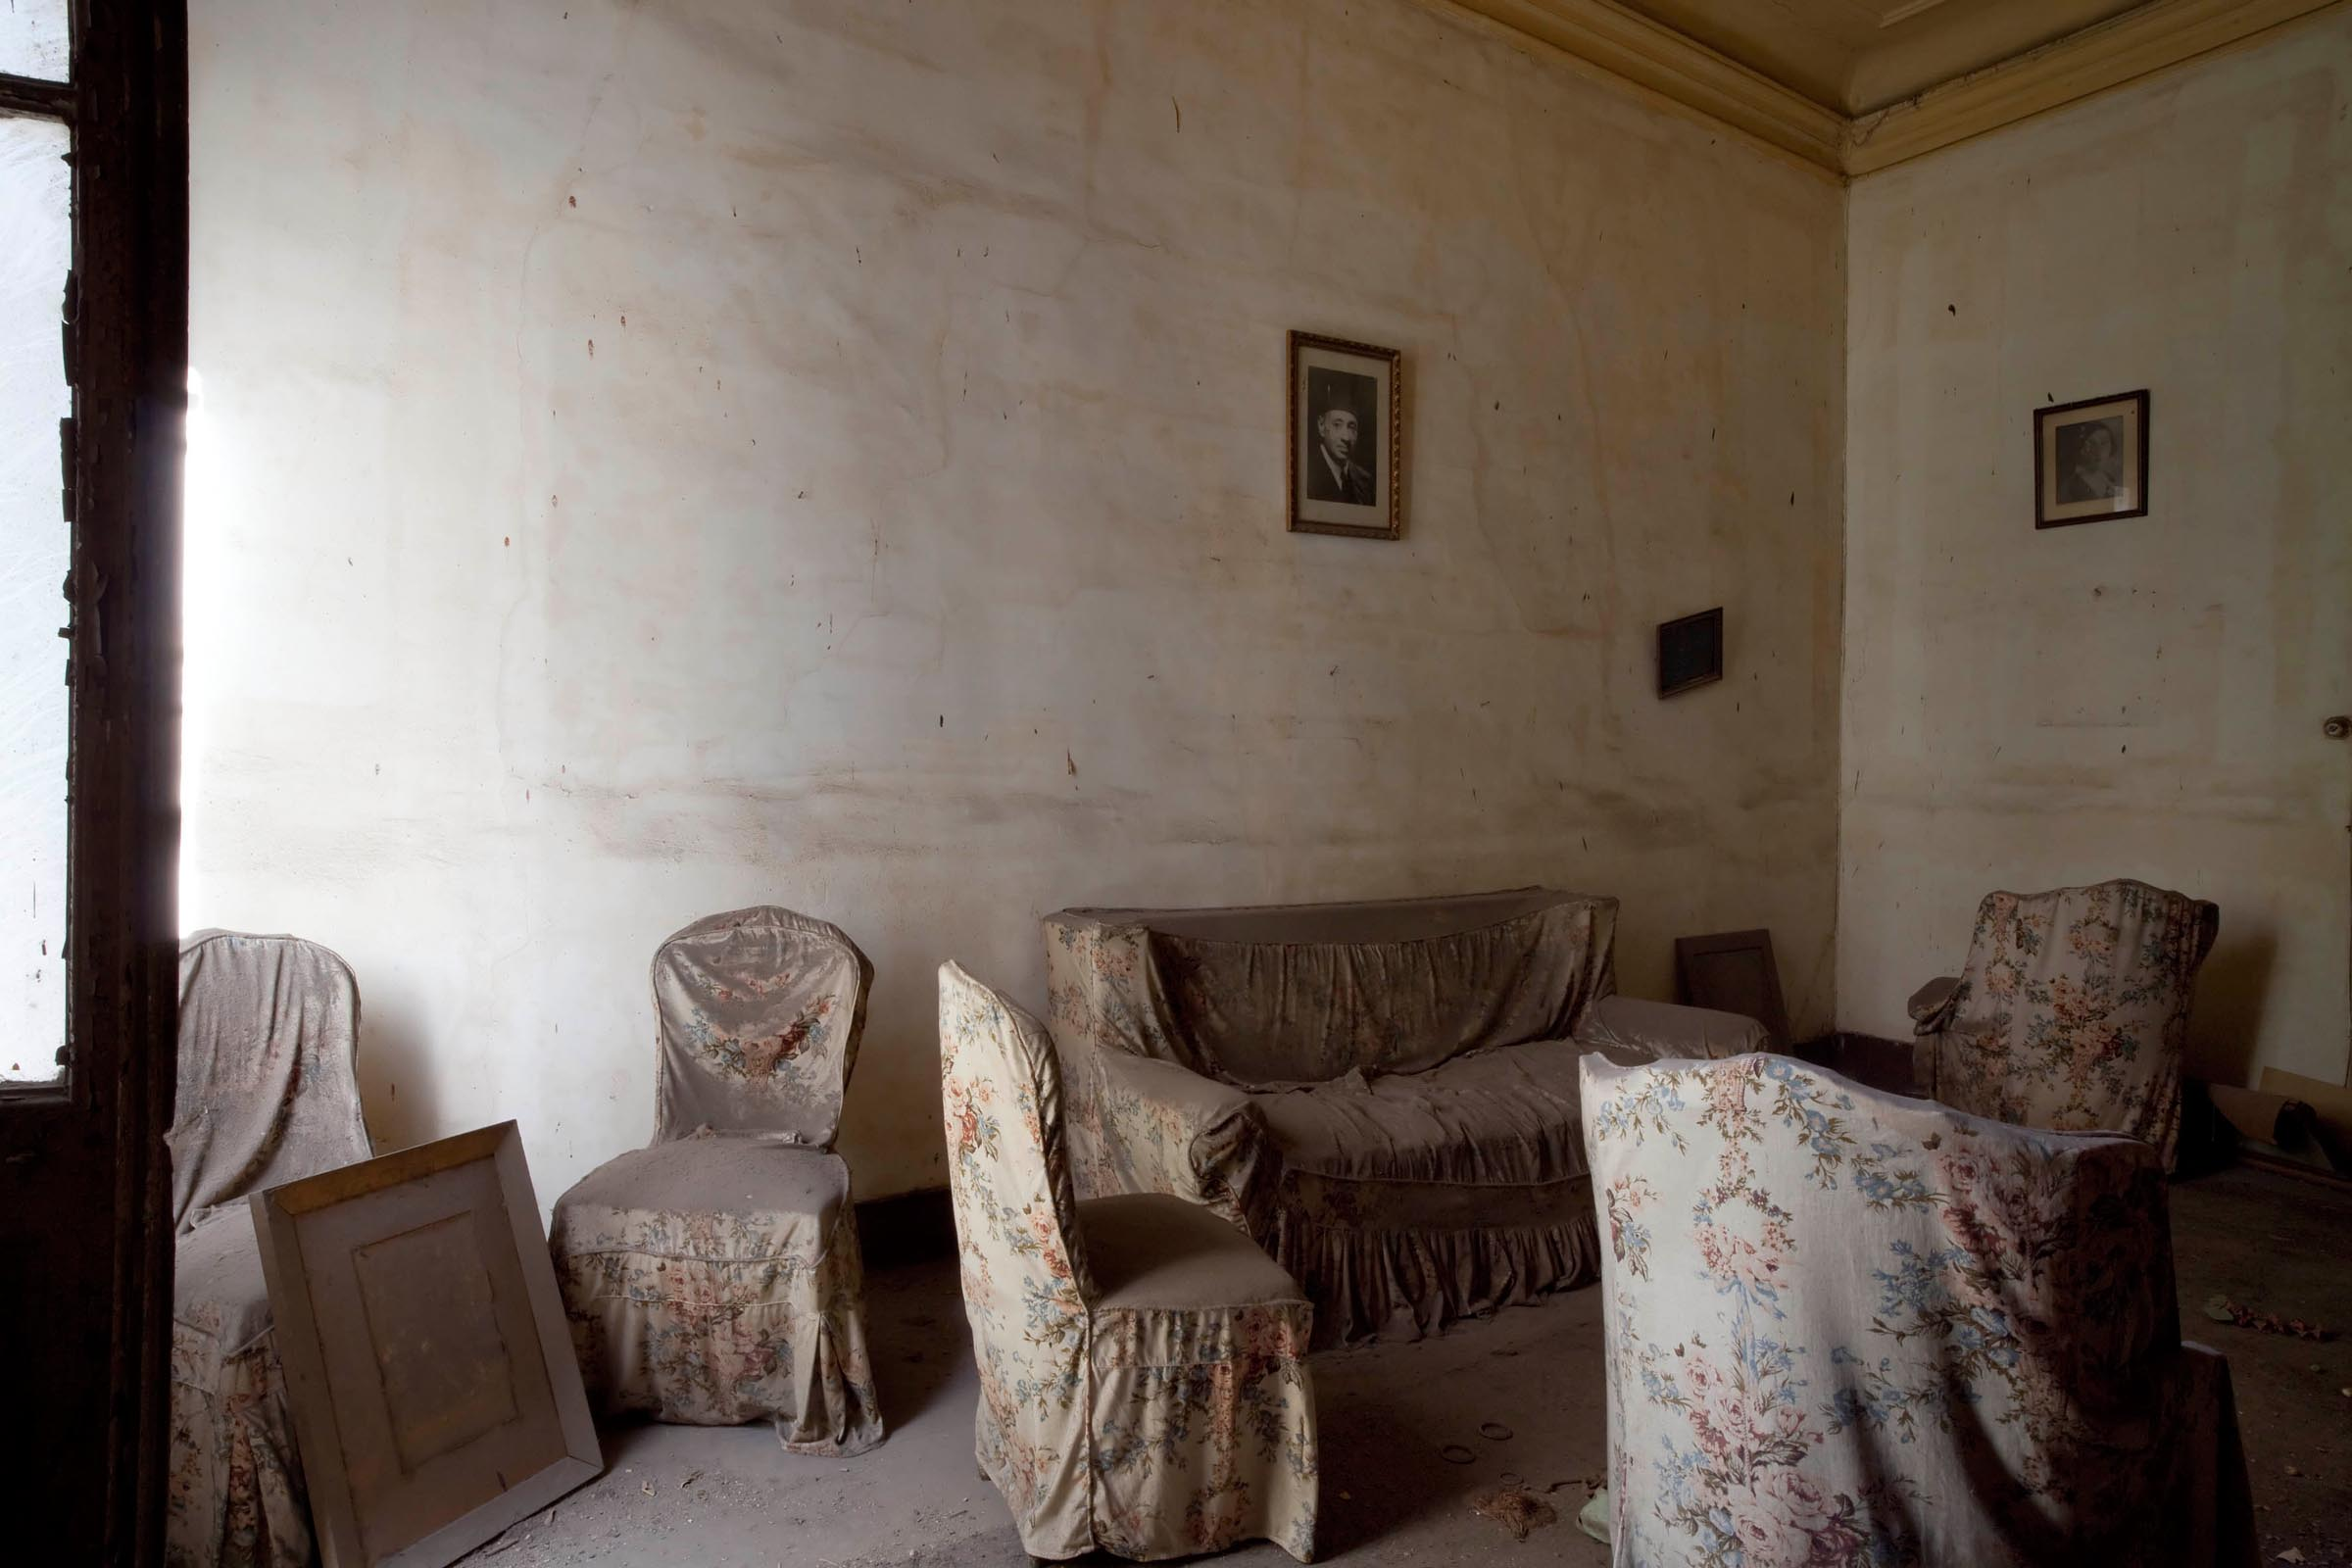 Xenia Nikolskaya Empty Apartment on Mahmoud Bassiouni street Cairo 2010